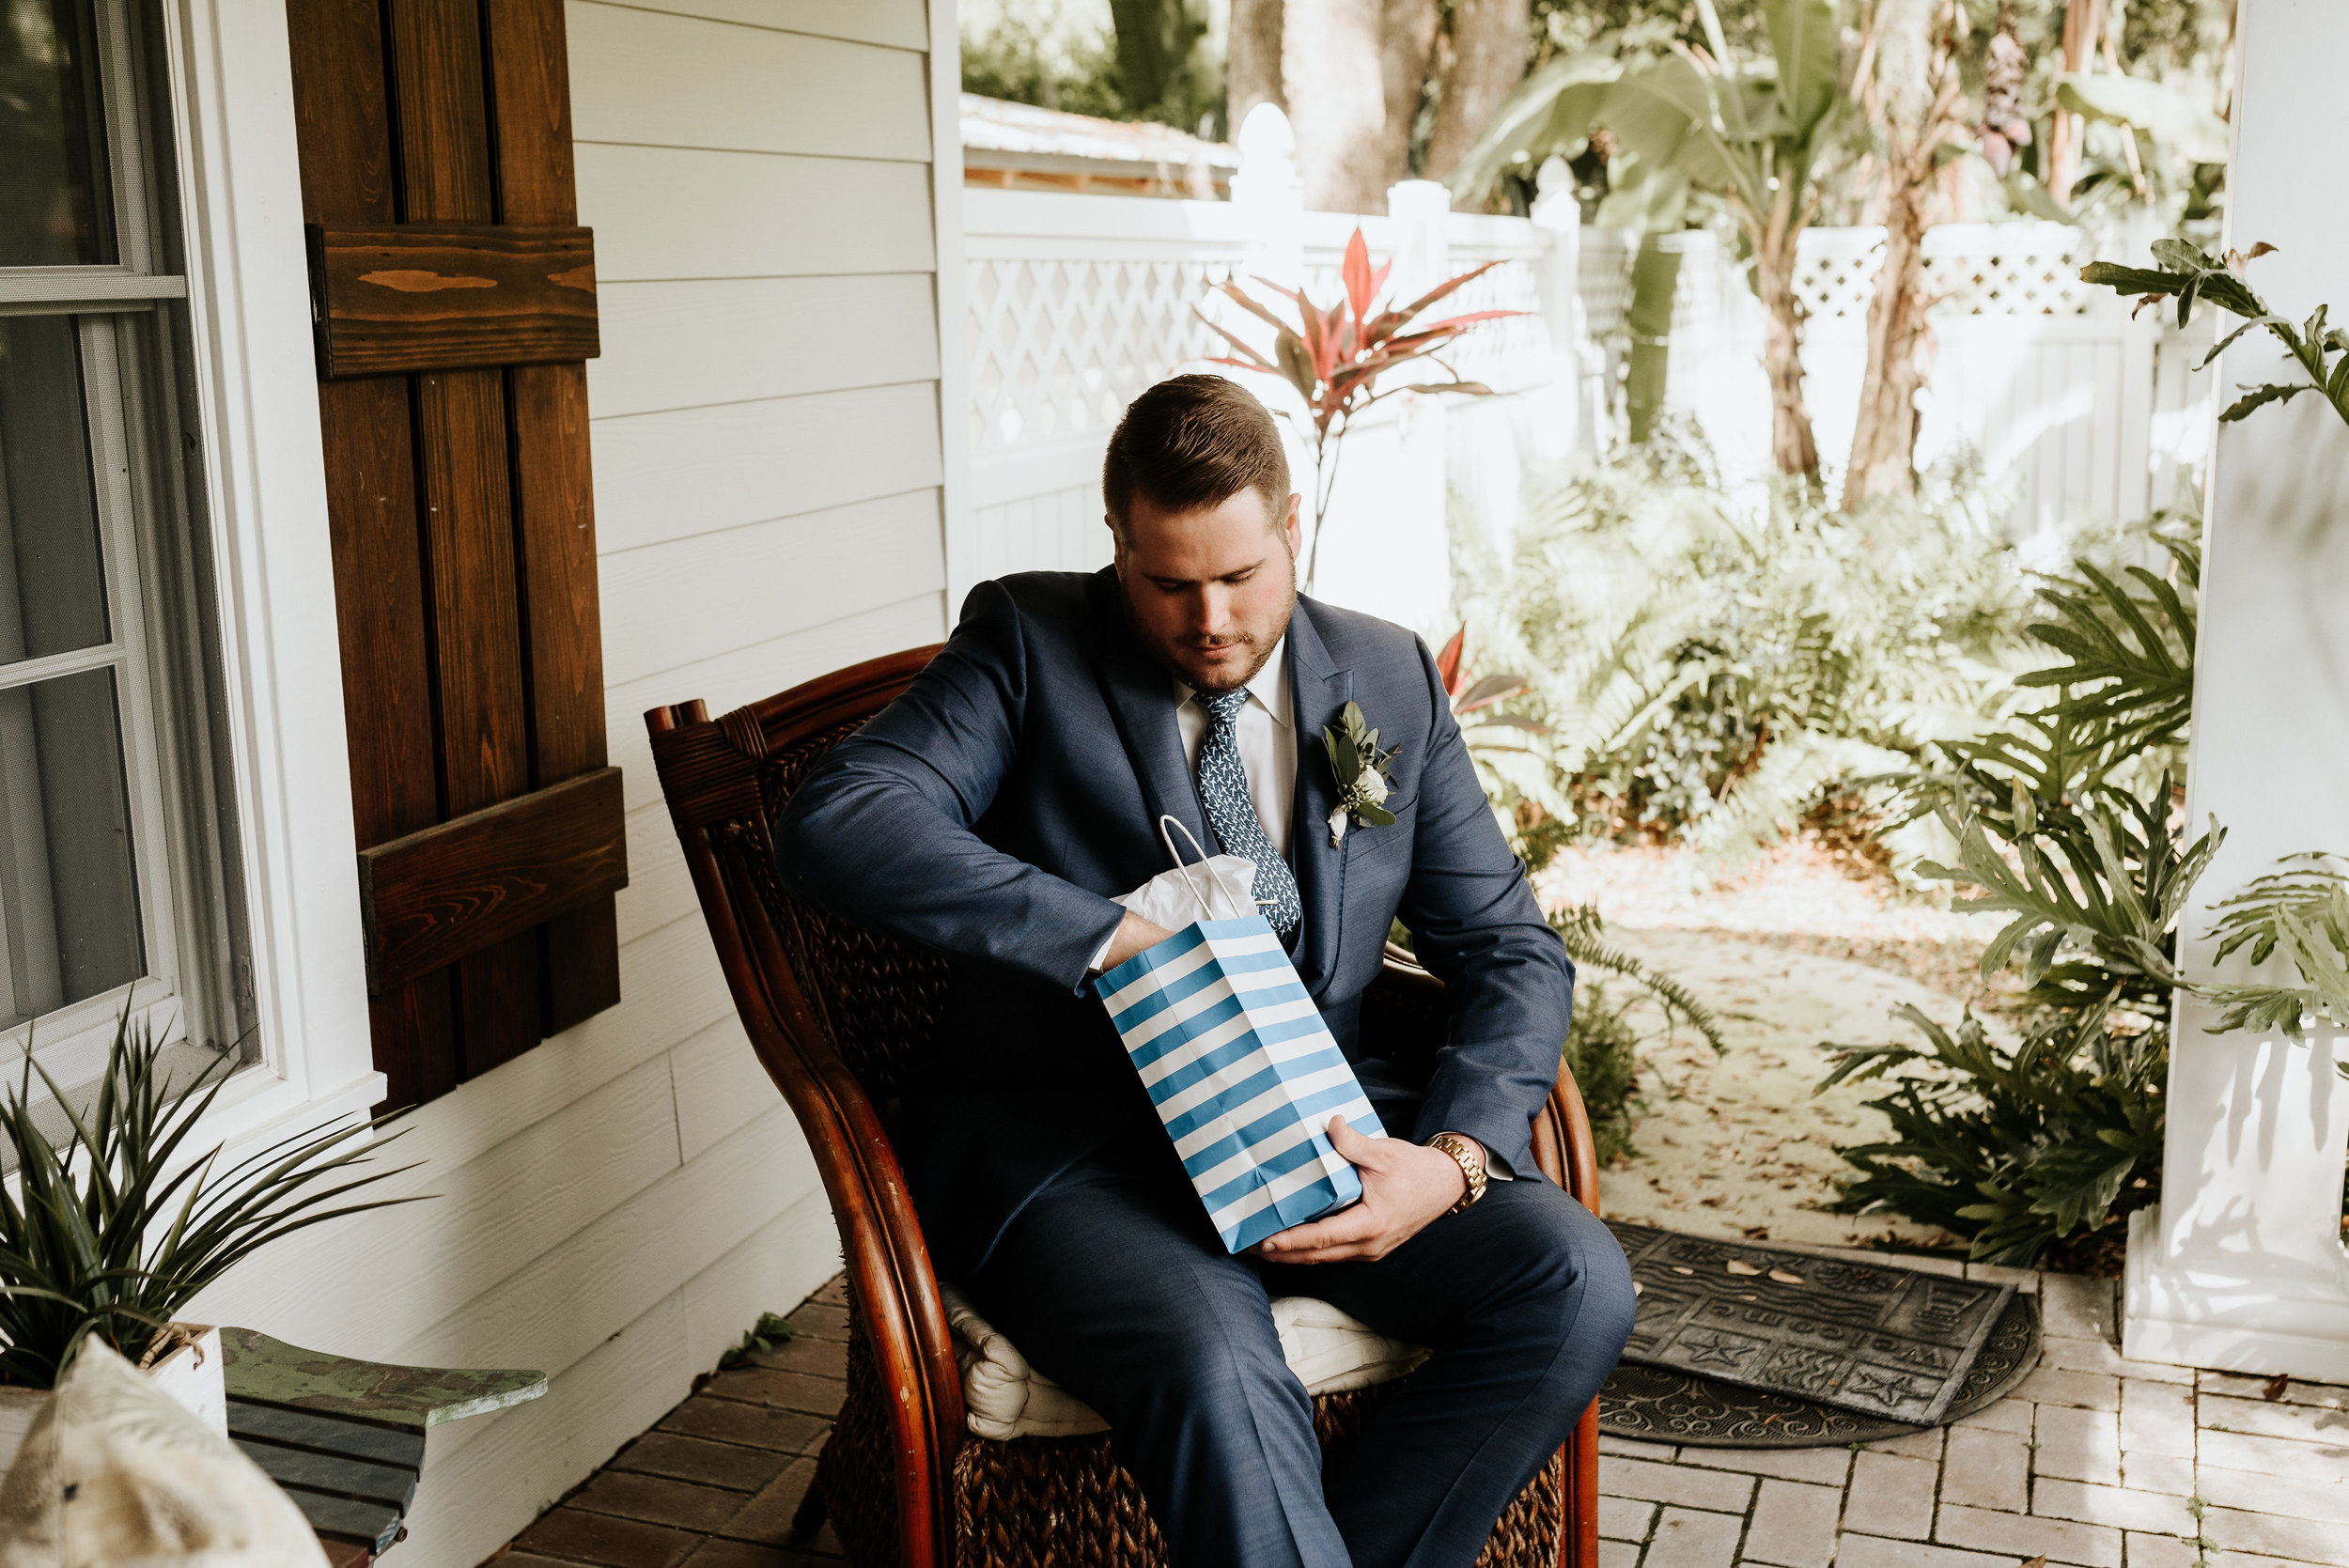 Mikenzi_Brad_Wedding_The_Delamater_House_New_Smyrna_Beach_Florida_Photography_by_V_9764.jpg